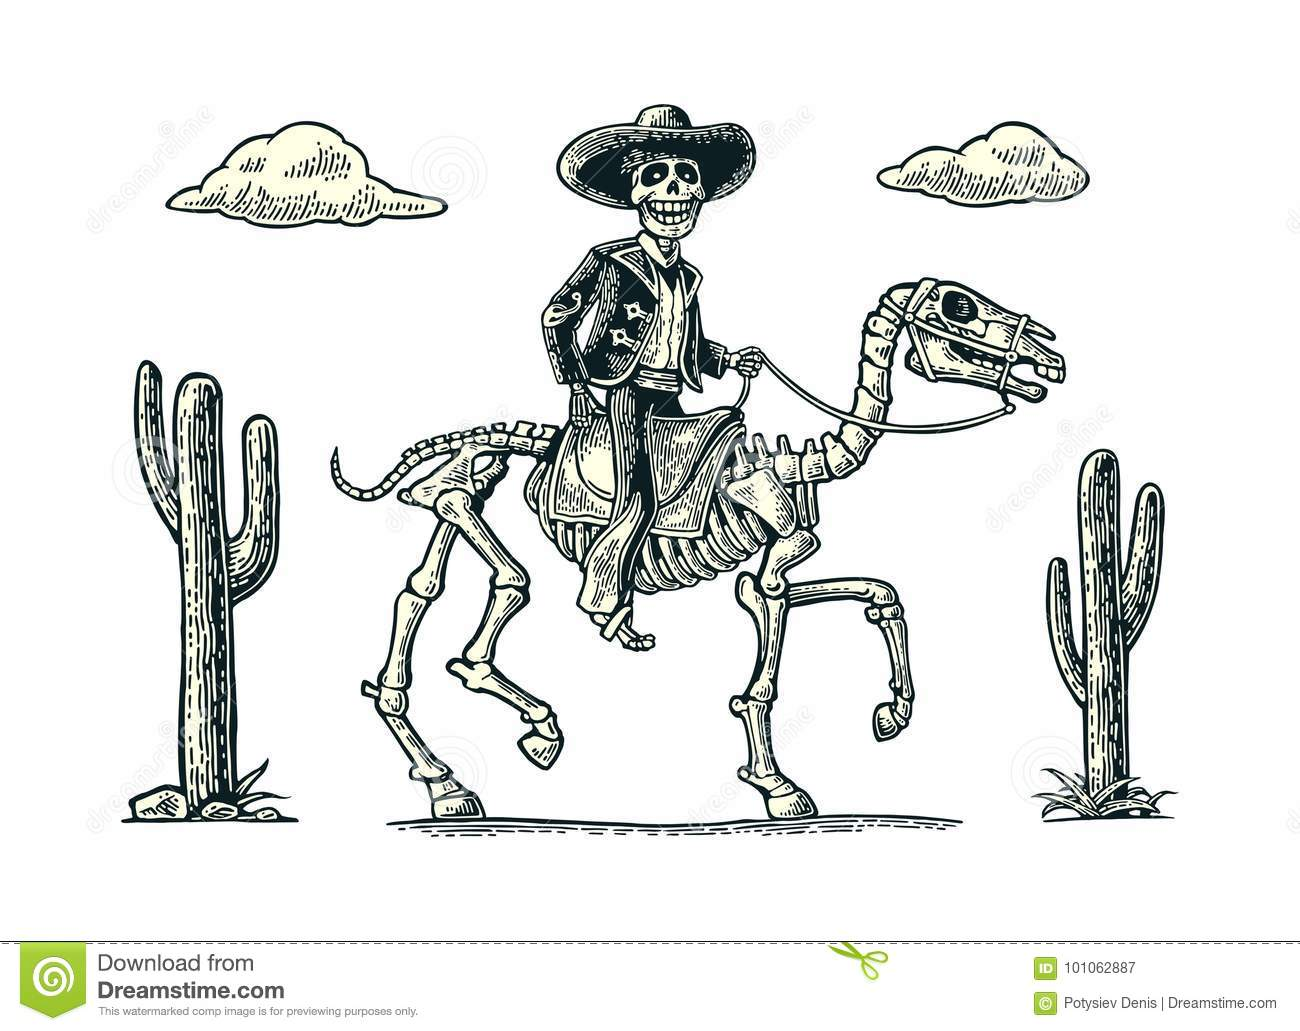 The Rider In The Mexican Man National Costumes Galloping On Skeleton Horse Stock Vector Illustration Of Suit Muertos 101062887